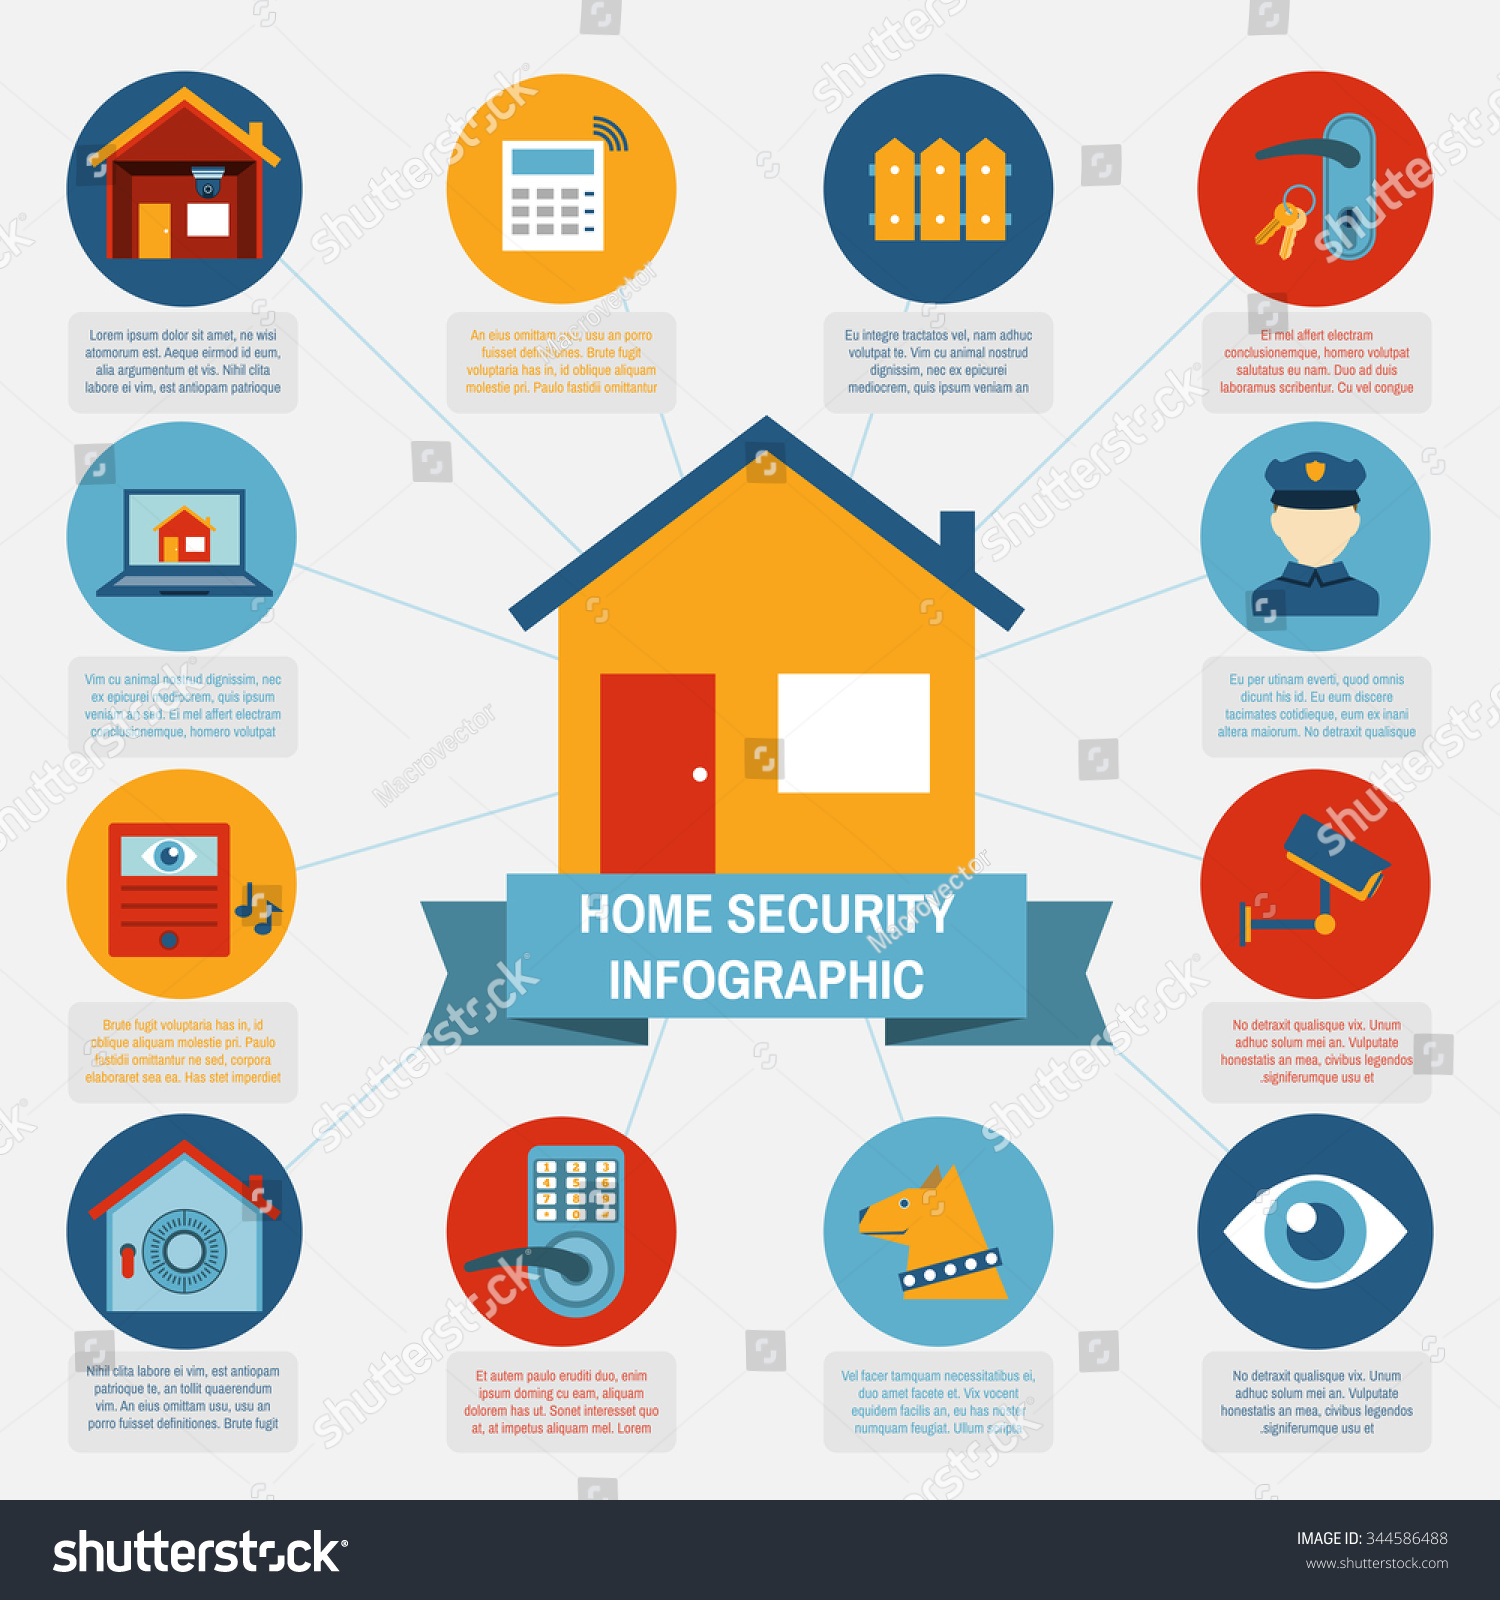 Modern Computer Controlled Home Security Systems Infographic Banner With  Information And Pictograms Blocks Abstract Isolated Vector